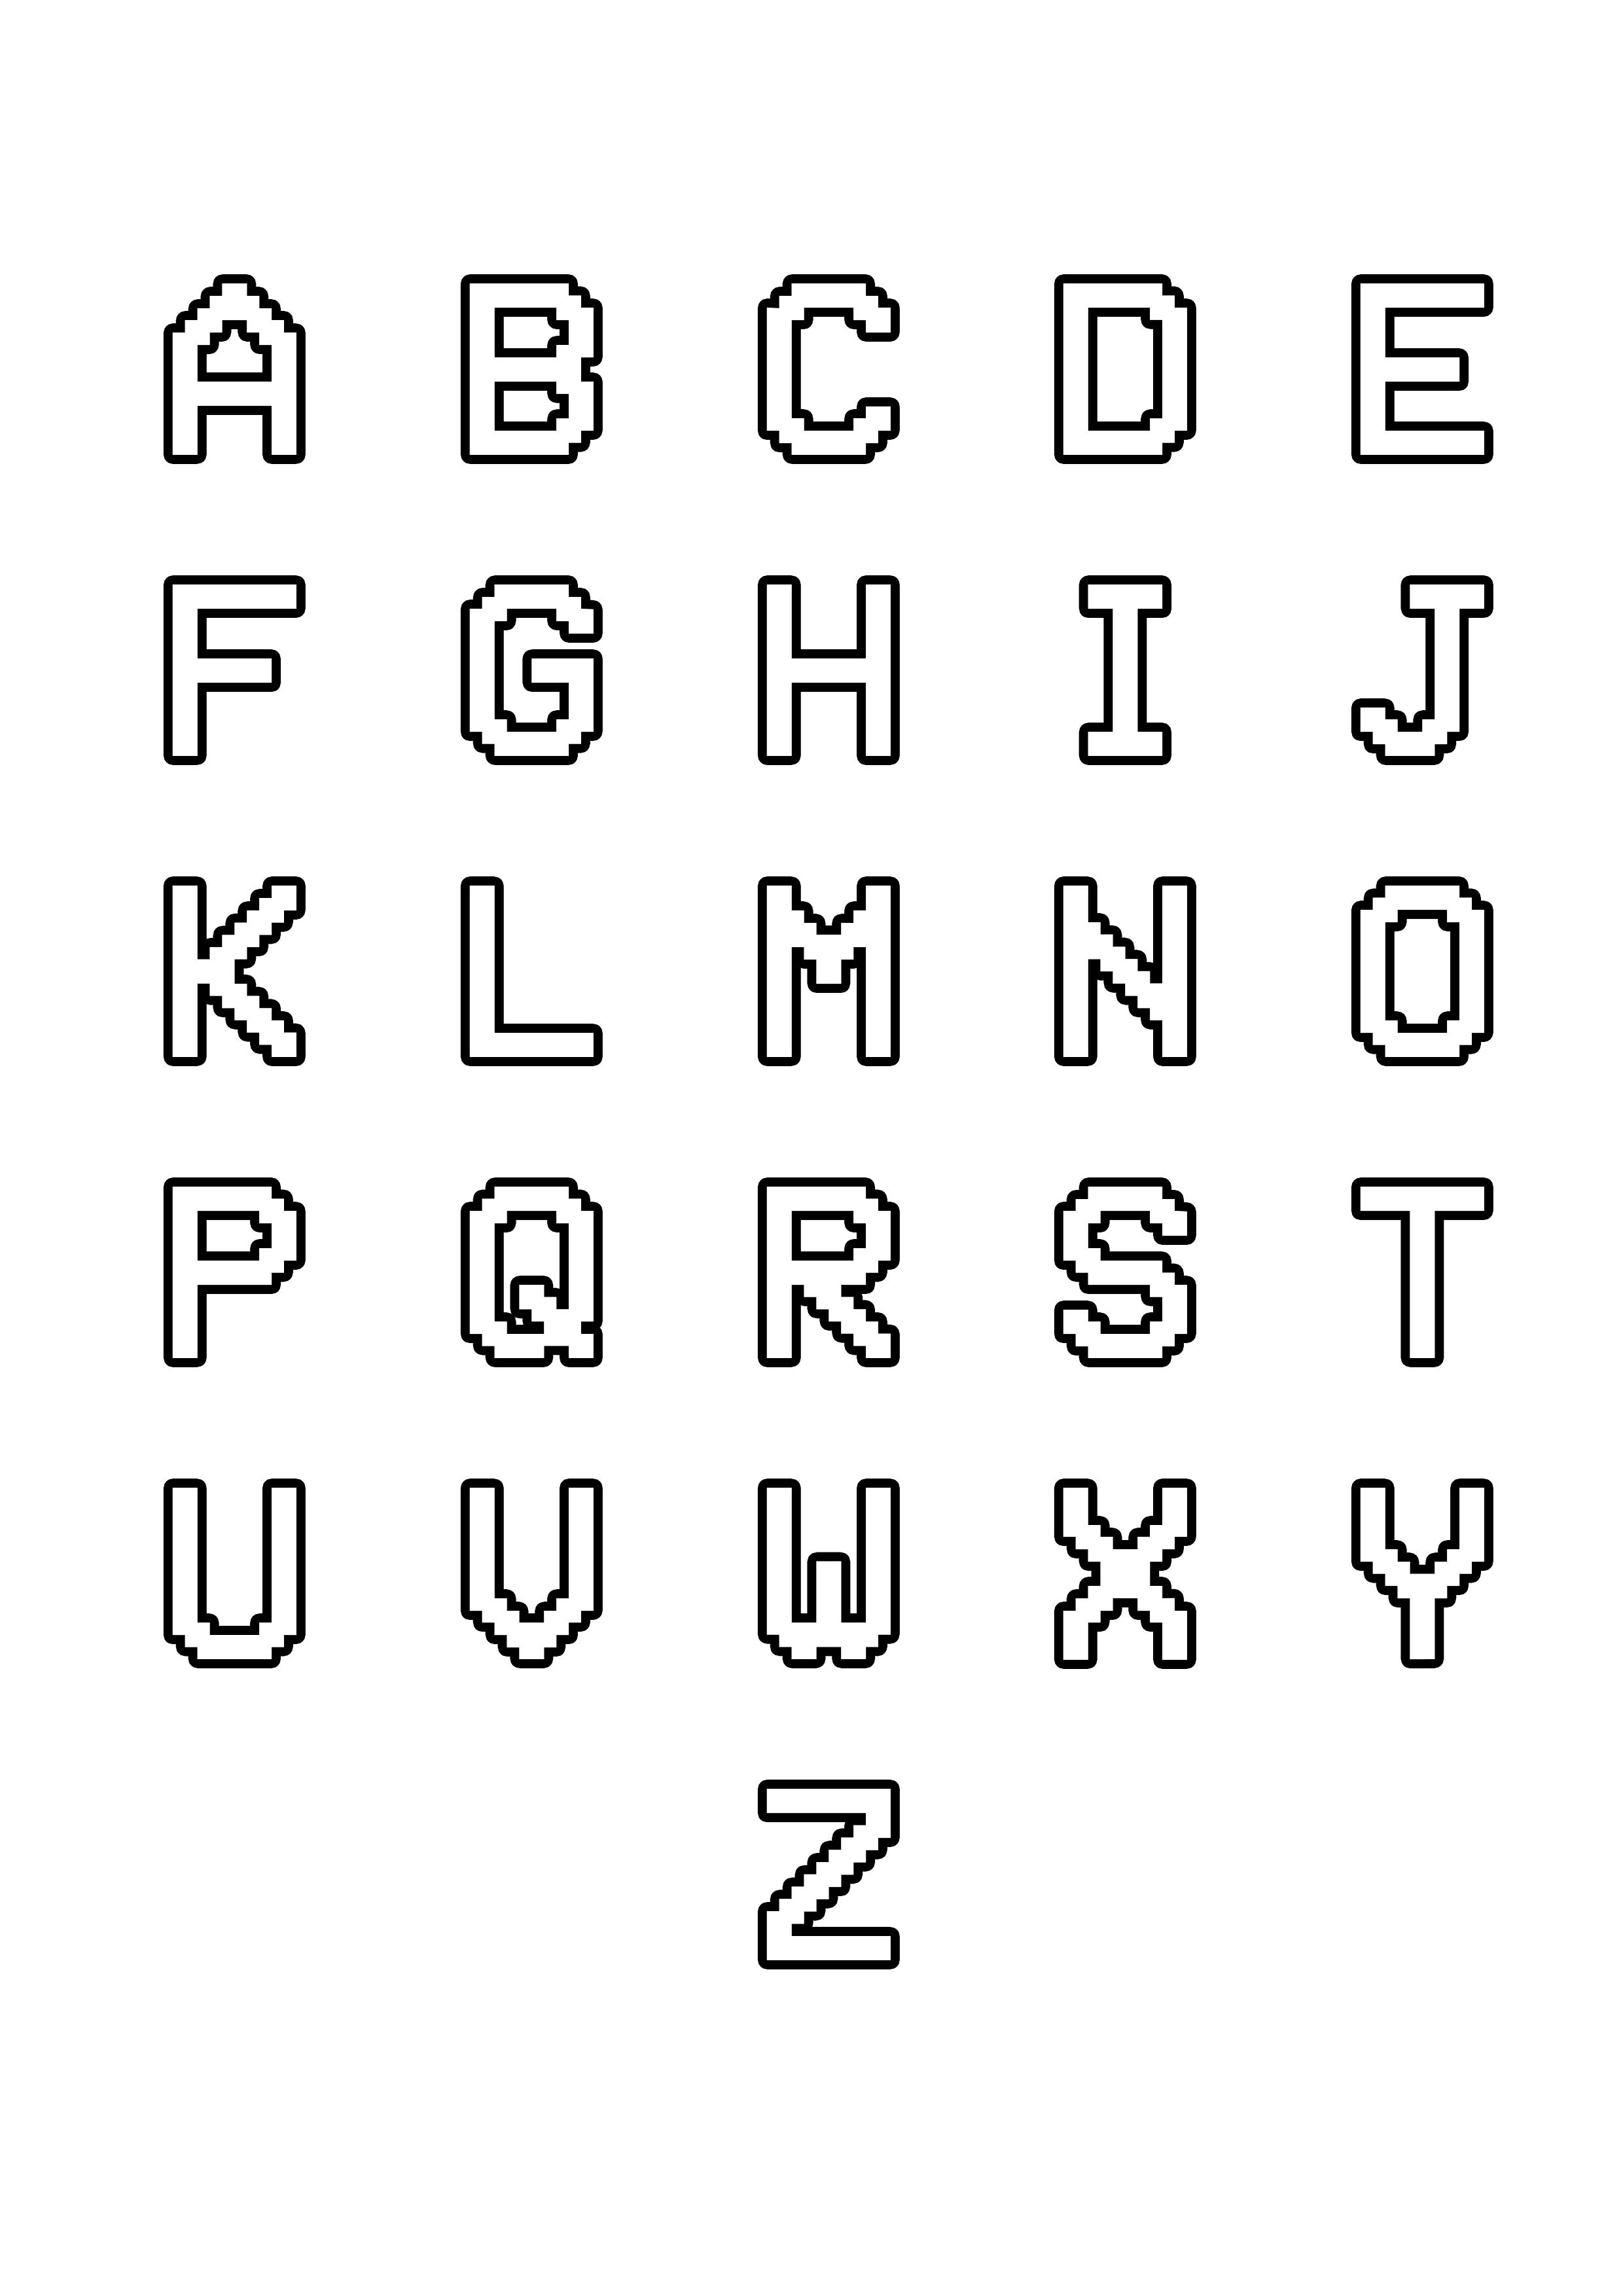 Alphabet Coloring Pages For Kids To Print Color Alphabet Coloring Pages Alphabet Coloring Alphabet